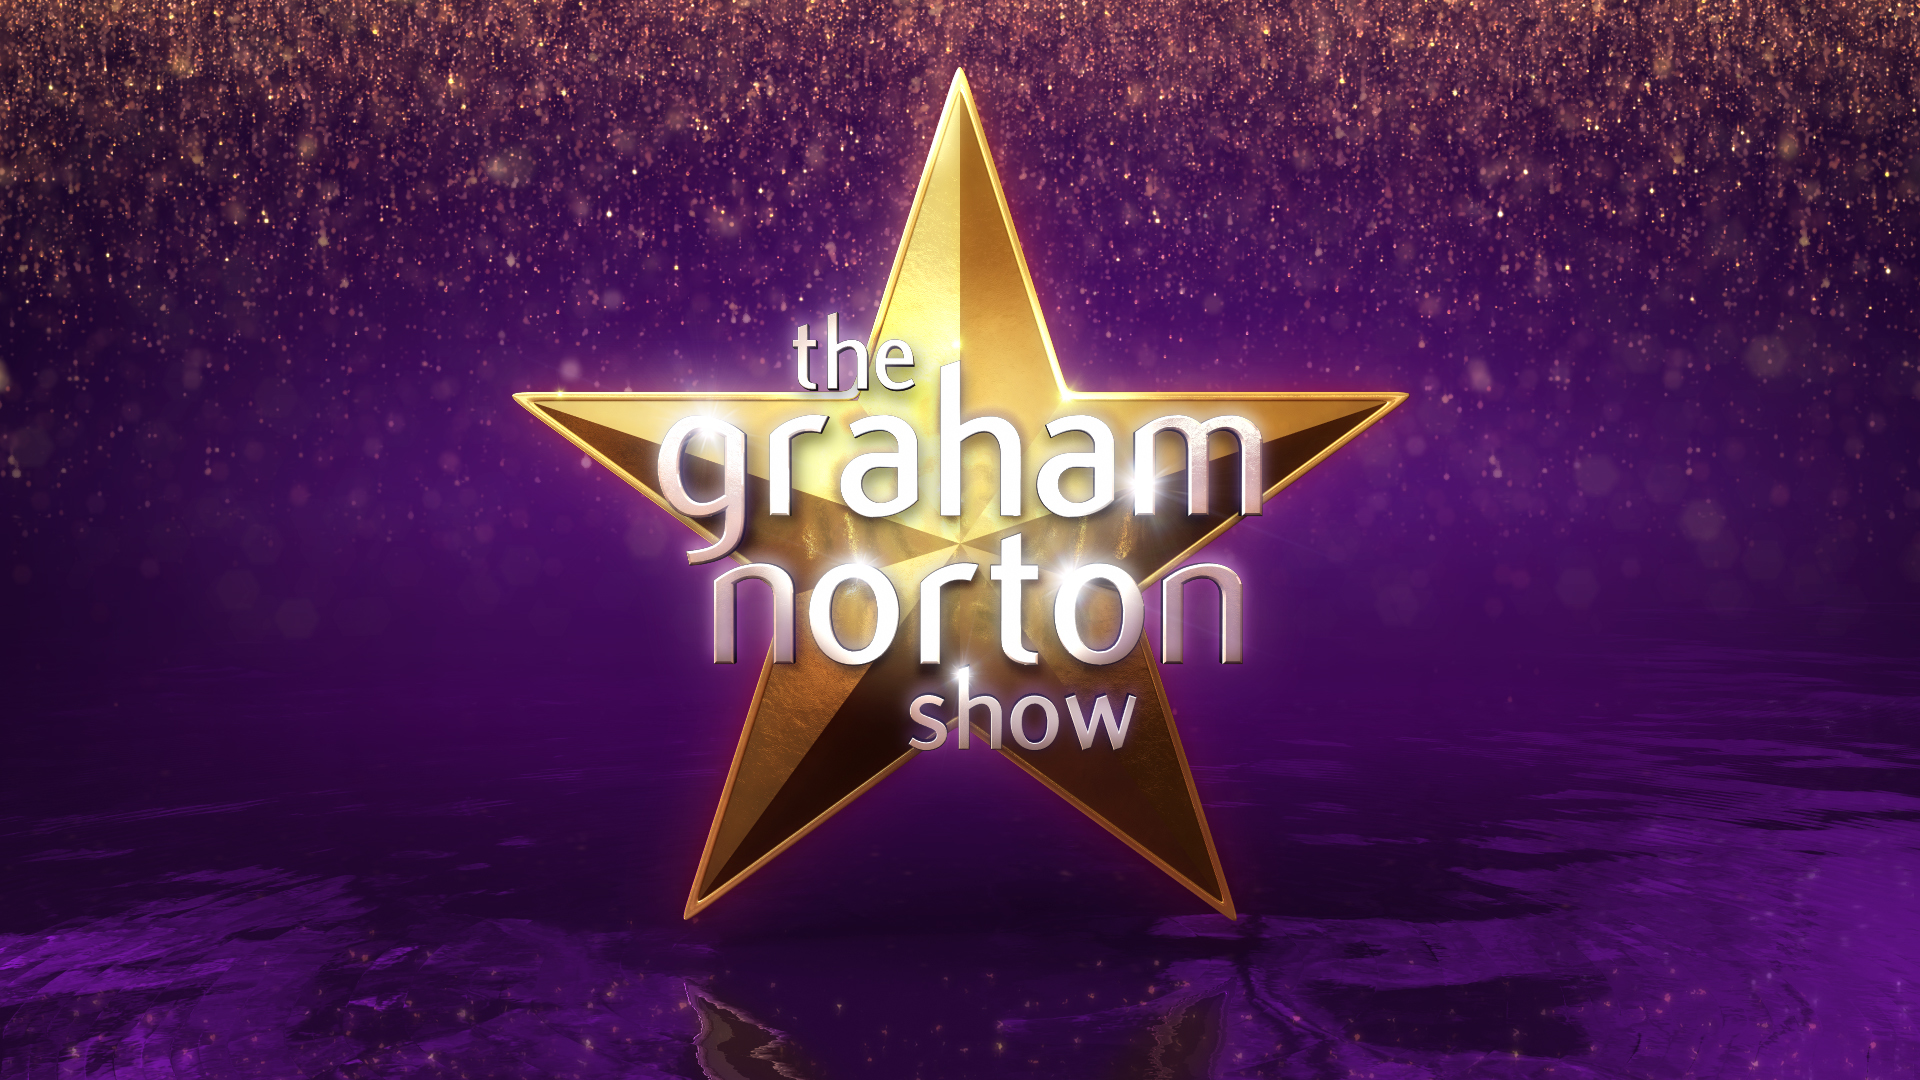 the graham norton show armie hammer.jpg